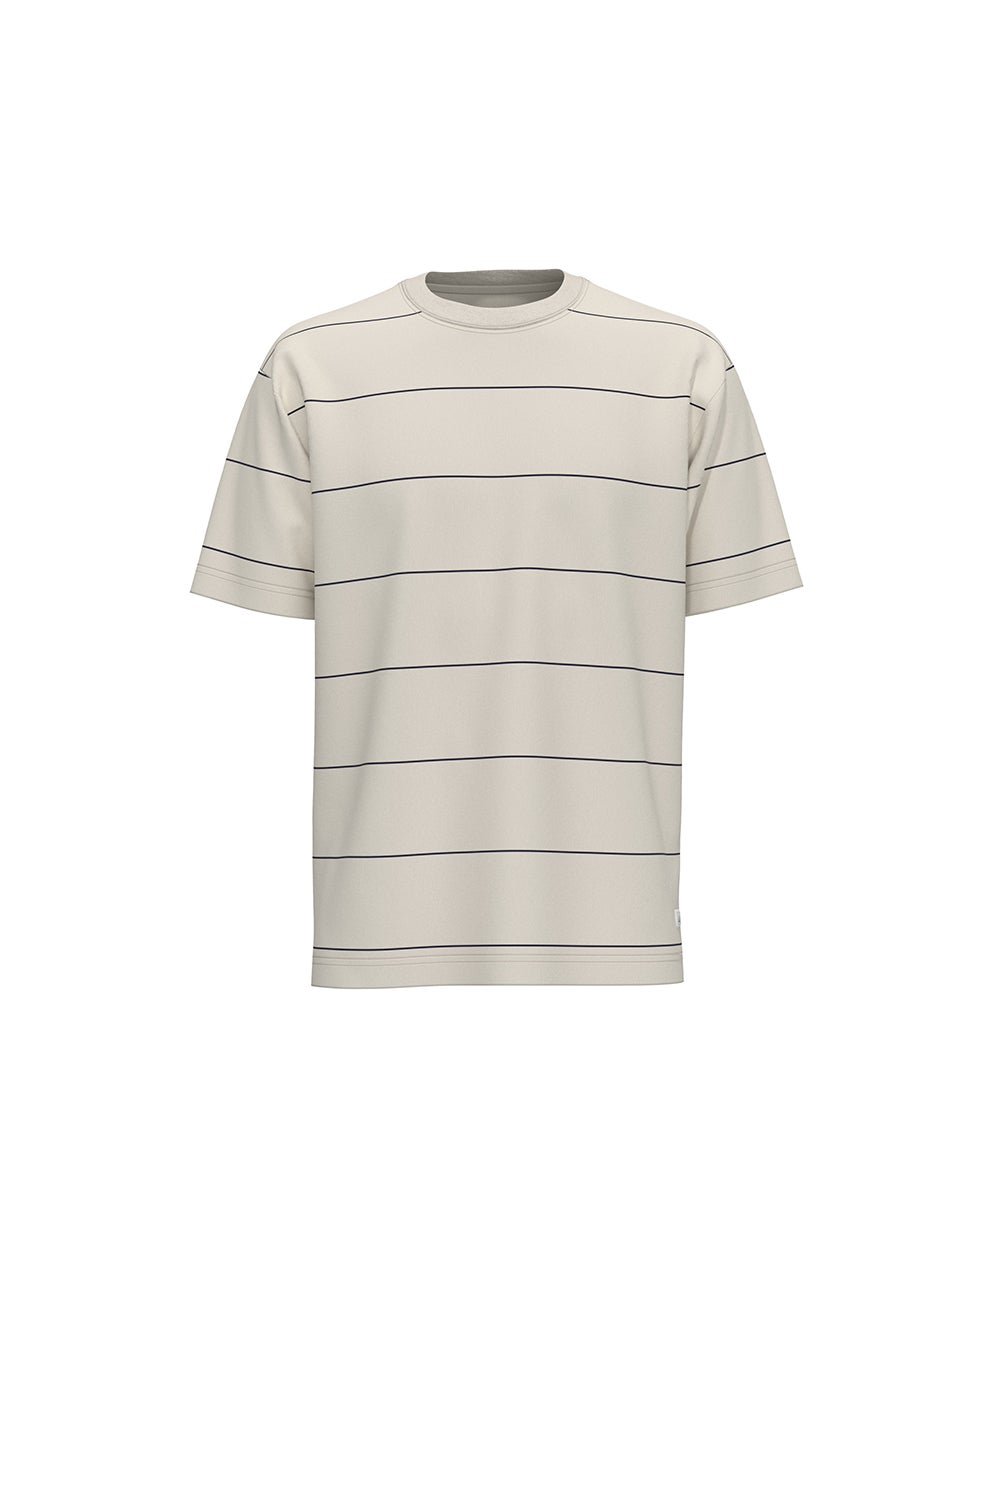 Levi's Made and Crafted Loose Tee Sunday Stripe Multi